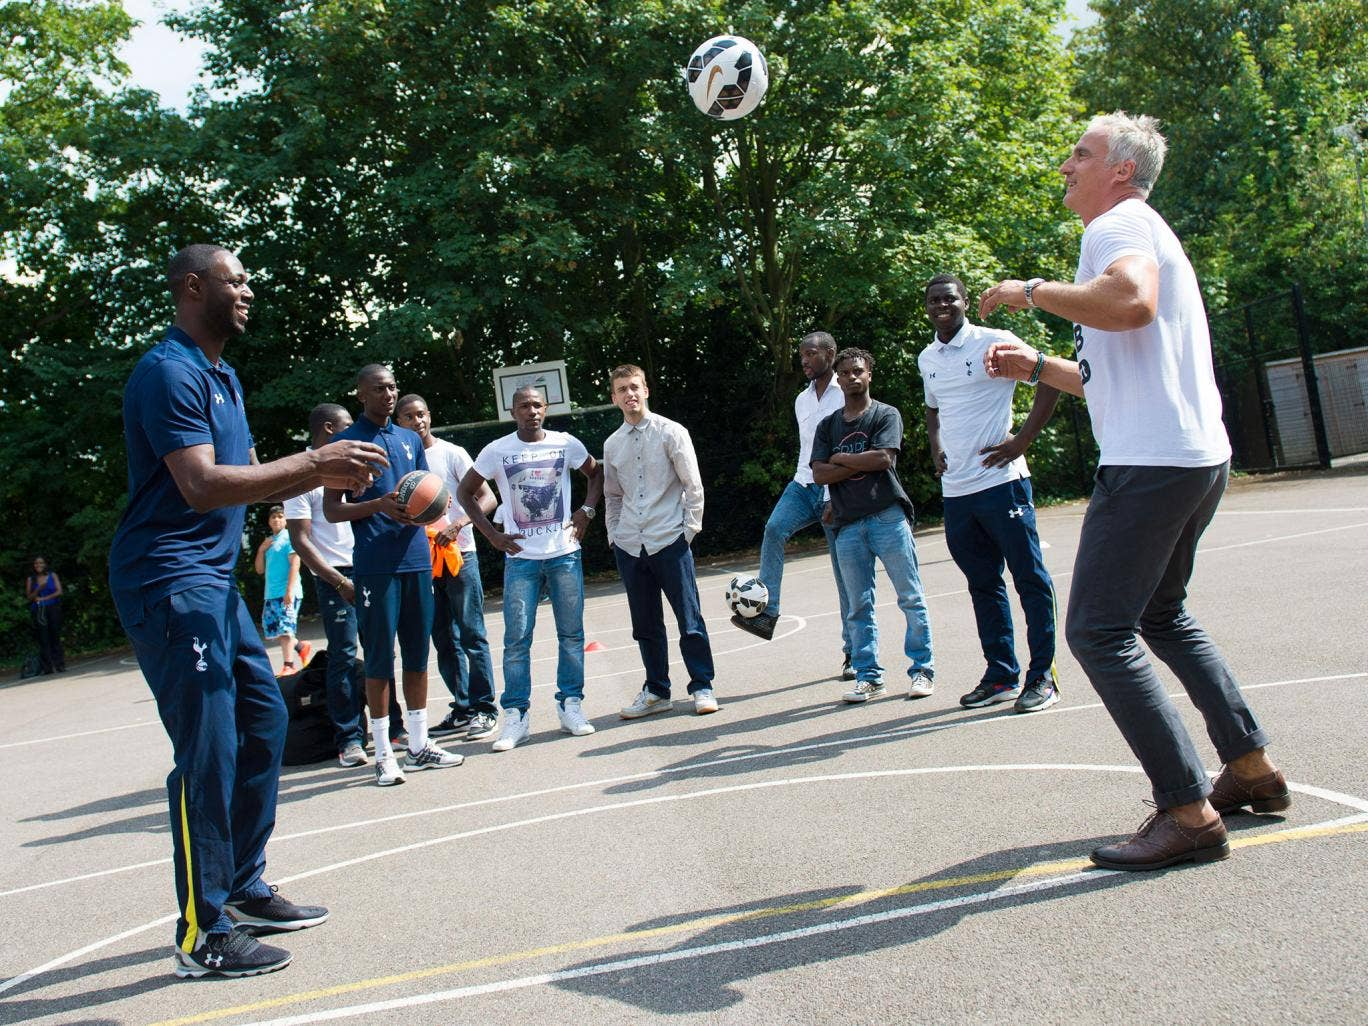 Ledley King and David Ginola perform keepy-uppys in front of members of the To Care Is To Do program